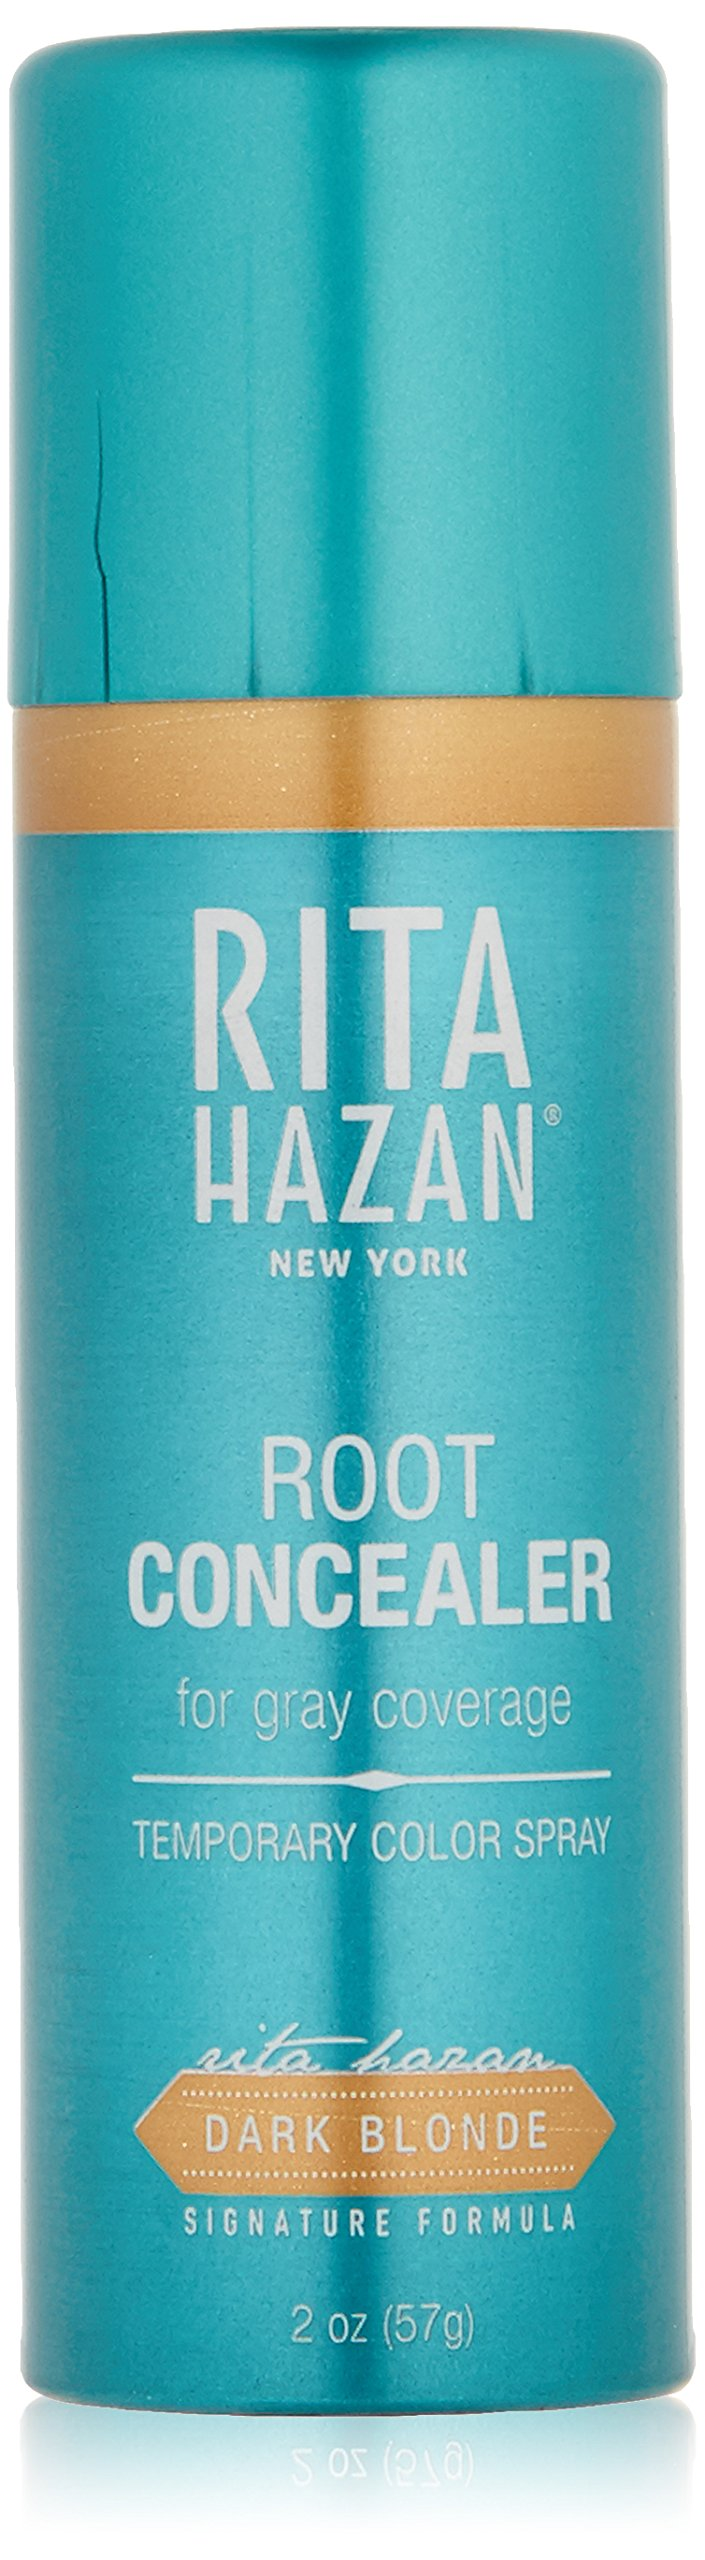 Root Concealer-Rita Hazan  Touch Up Spray- Eliminate Grey 2 Oz (Discontinued)